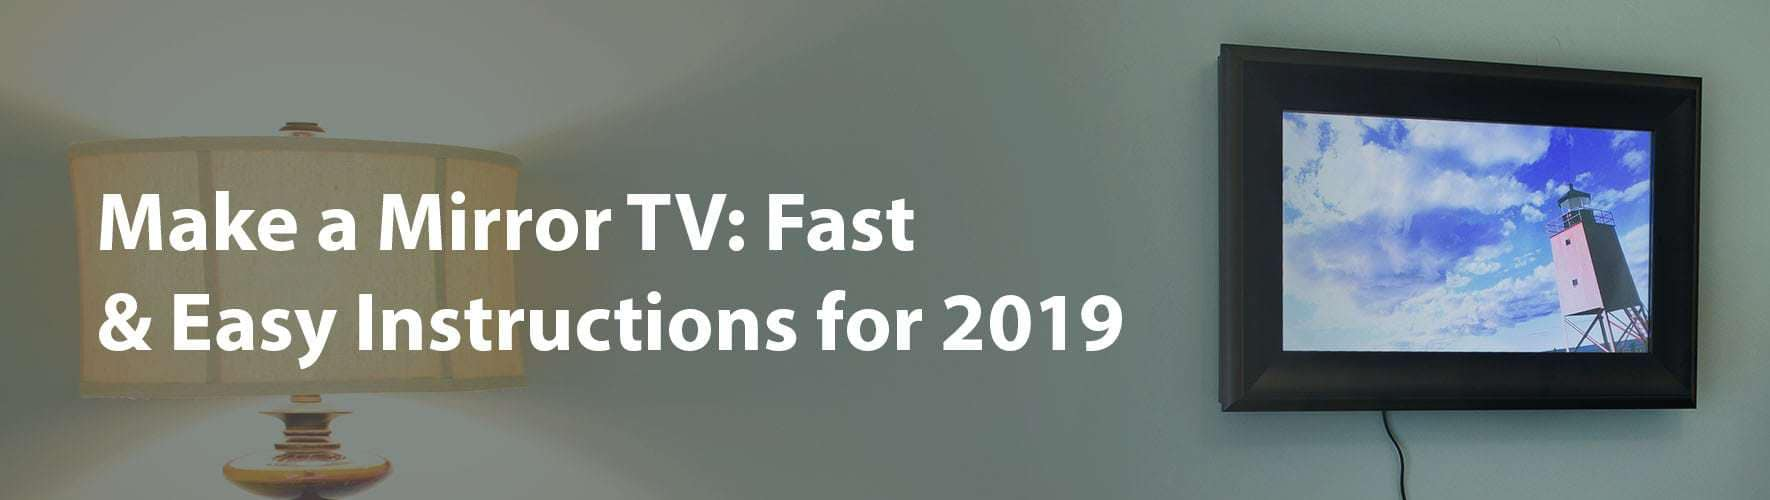 Make A Mirror TV: Fast & Easy Instructions for 2019 [NEW]